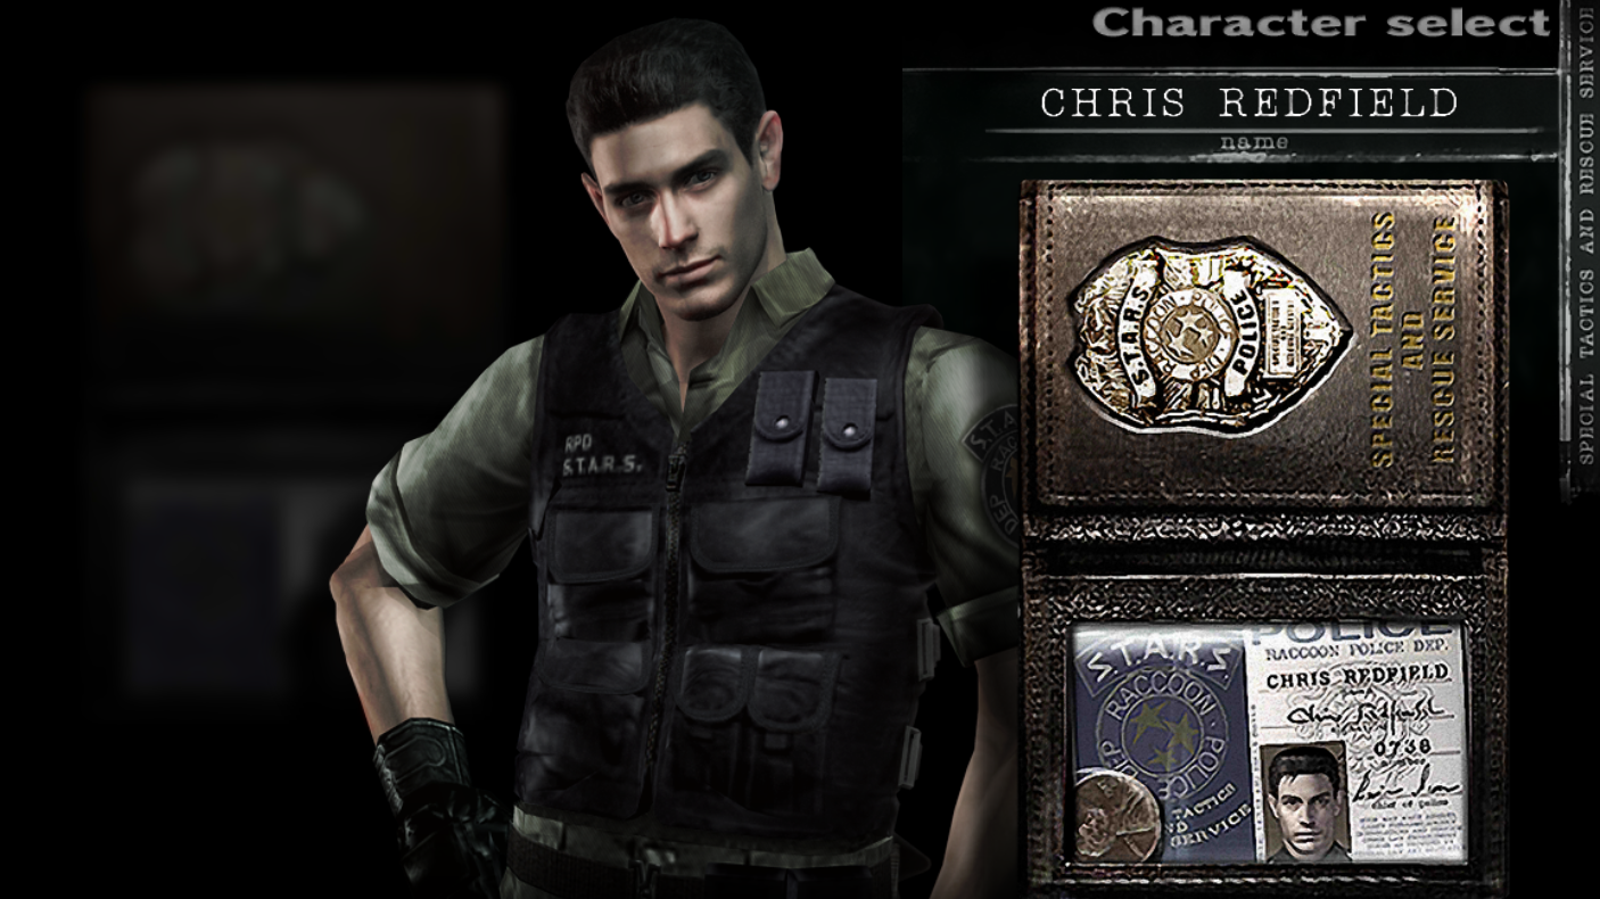 Chris Redfield in Resident Evil (2002).